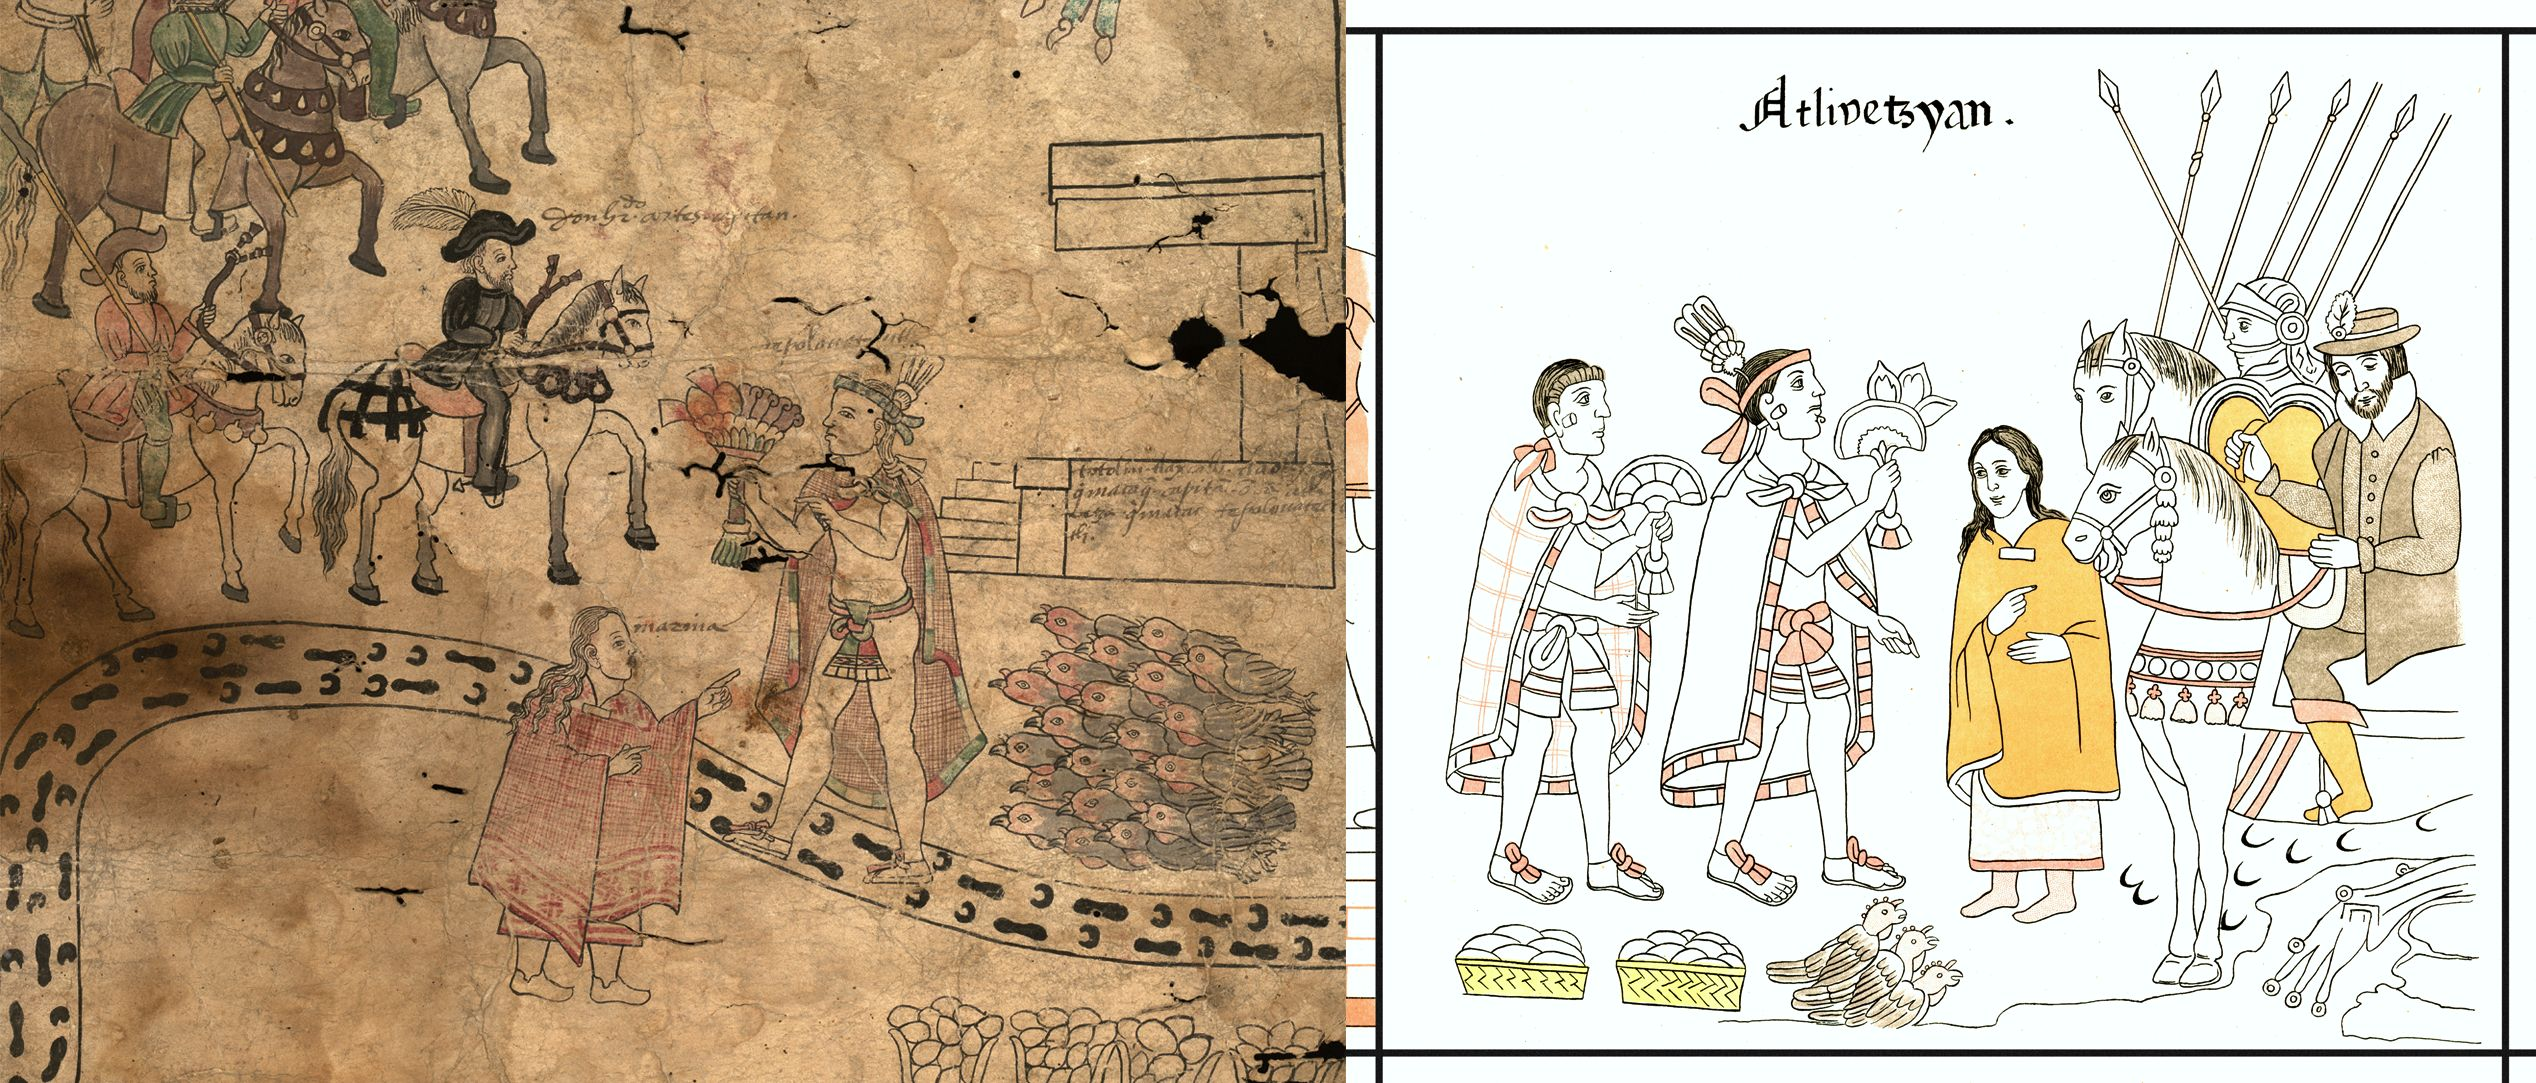 FIGURE 8. Comparison of a scene from the Texas Fragment with its cognate in the Lienzo de Tlaxcala (cell 4).